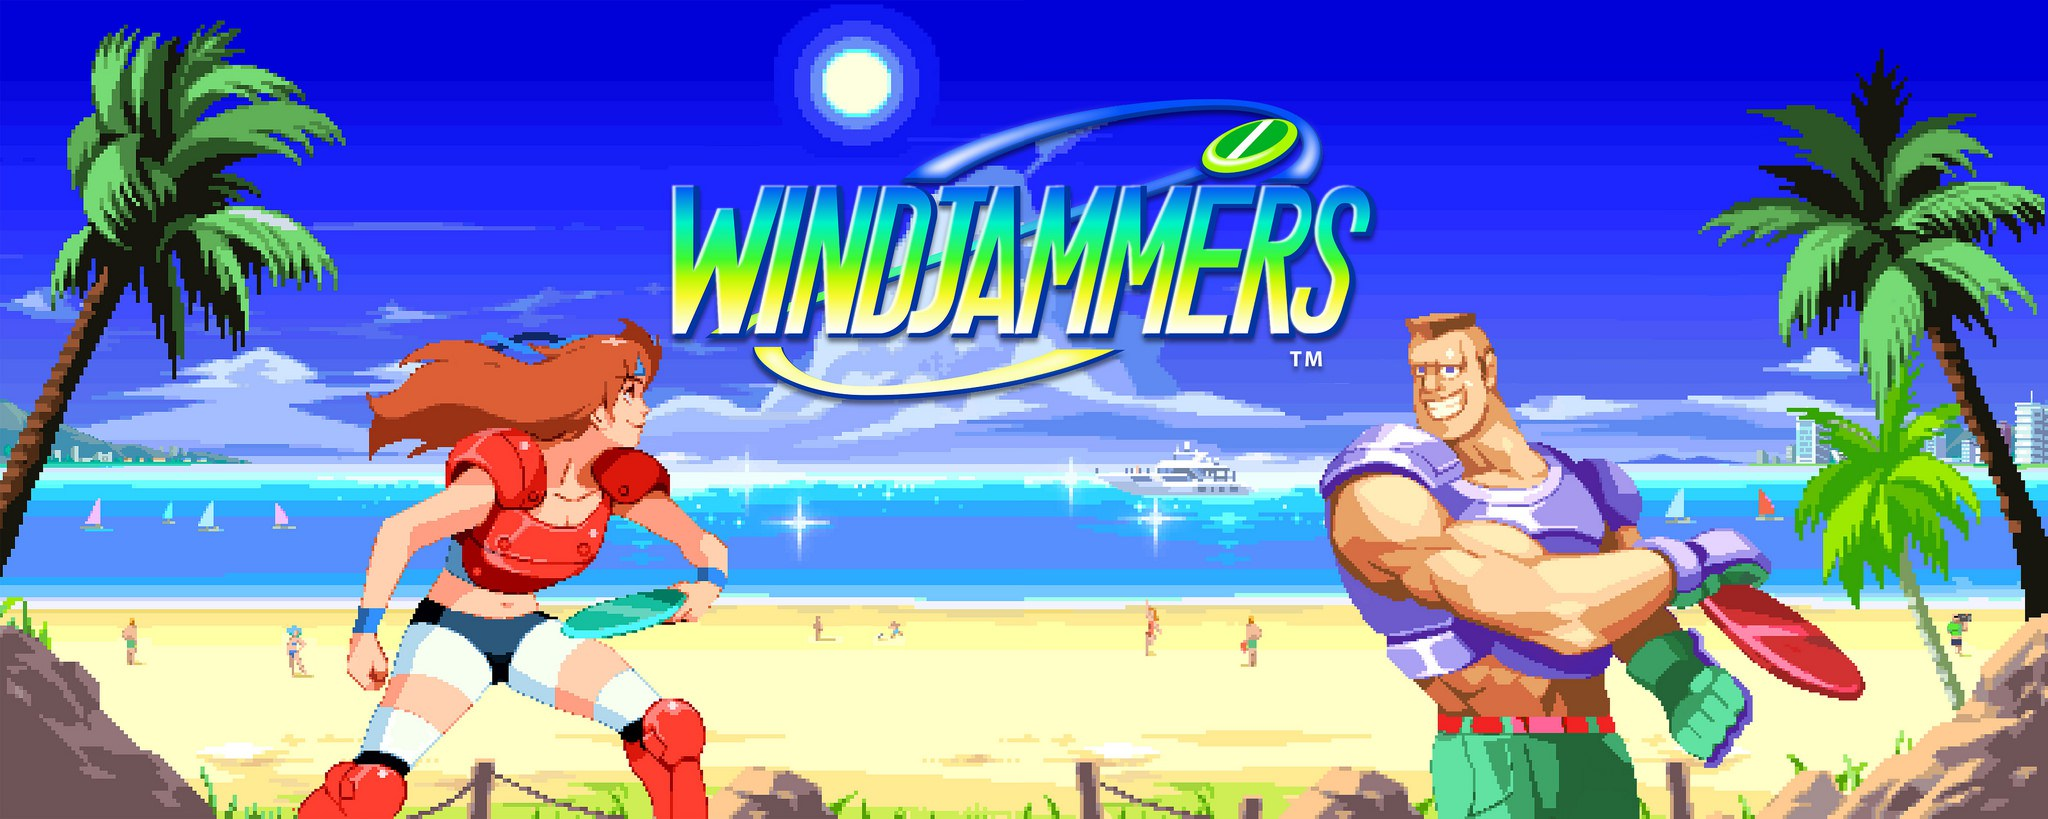 A new patch for Windjammers on PS4!